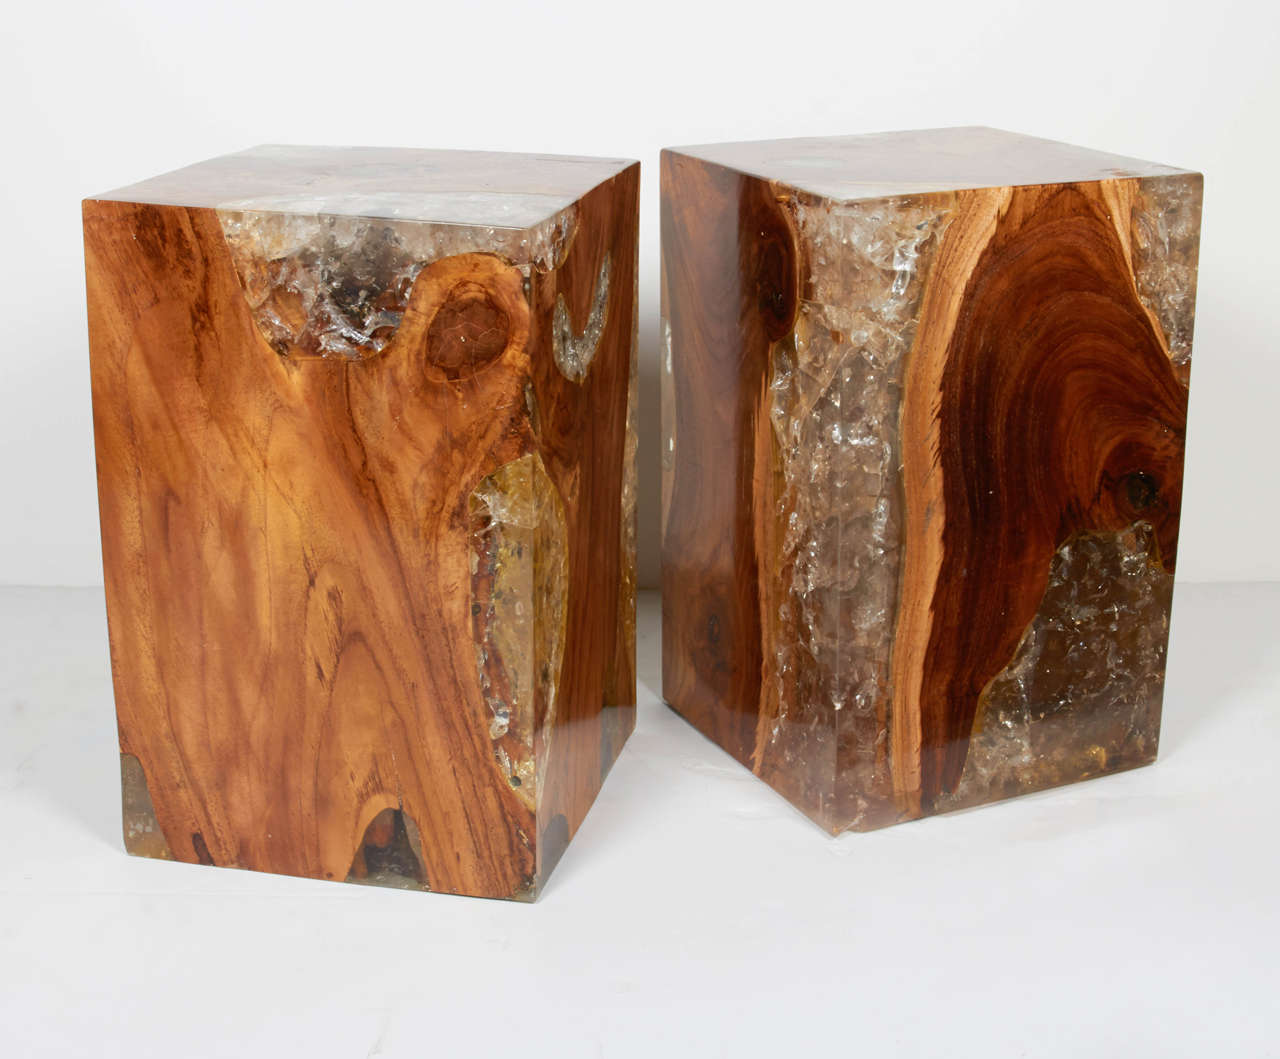 Amazing Pair Of Modern Organic Teak Wood And Cracked Resin Side Tables 3